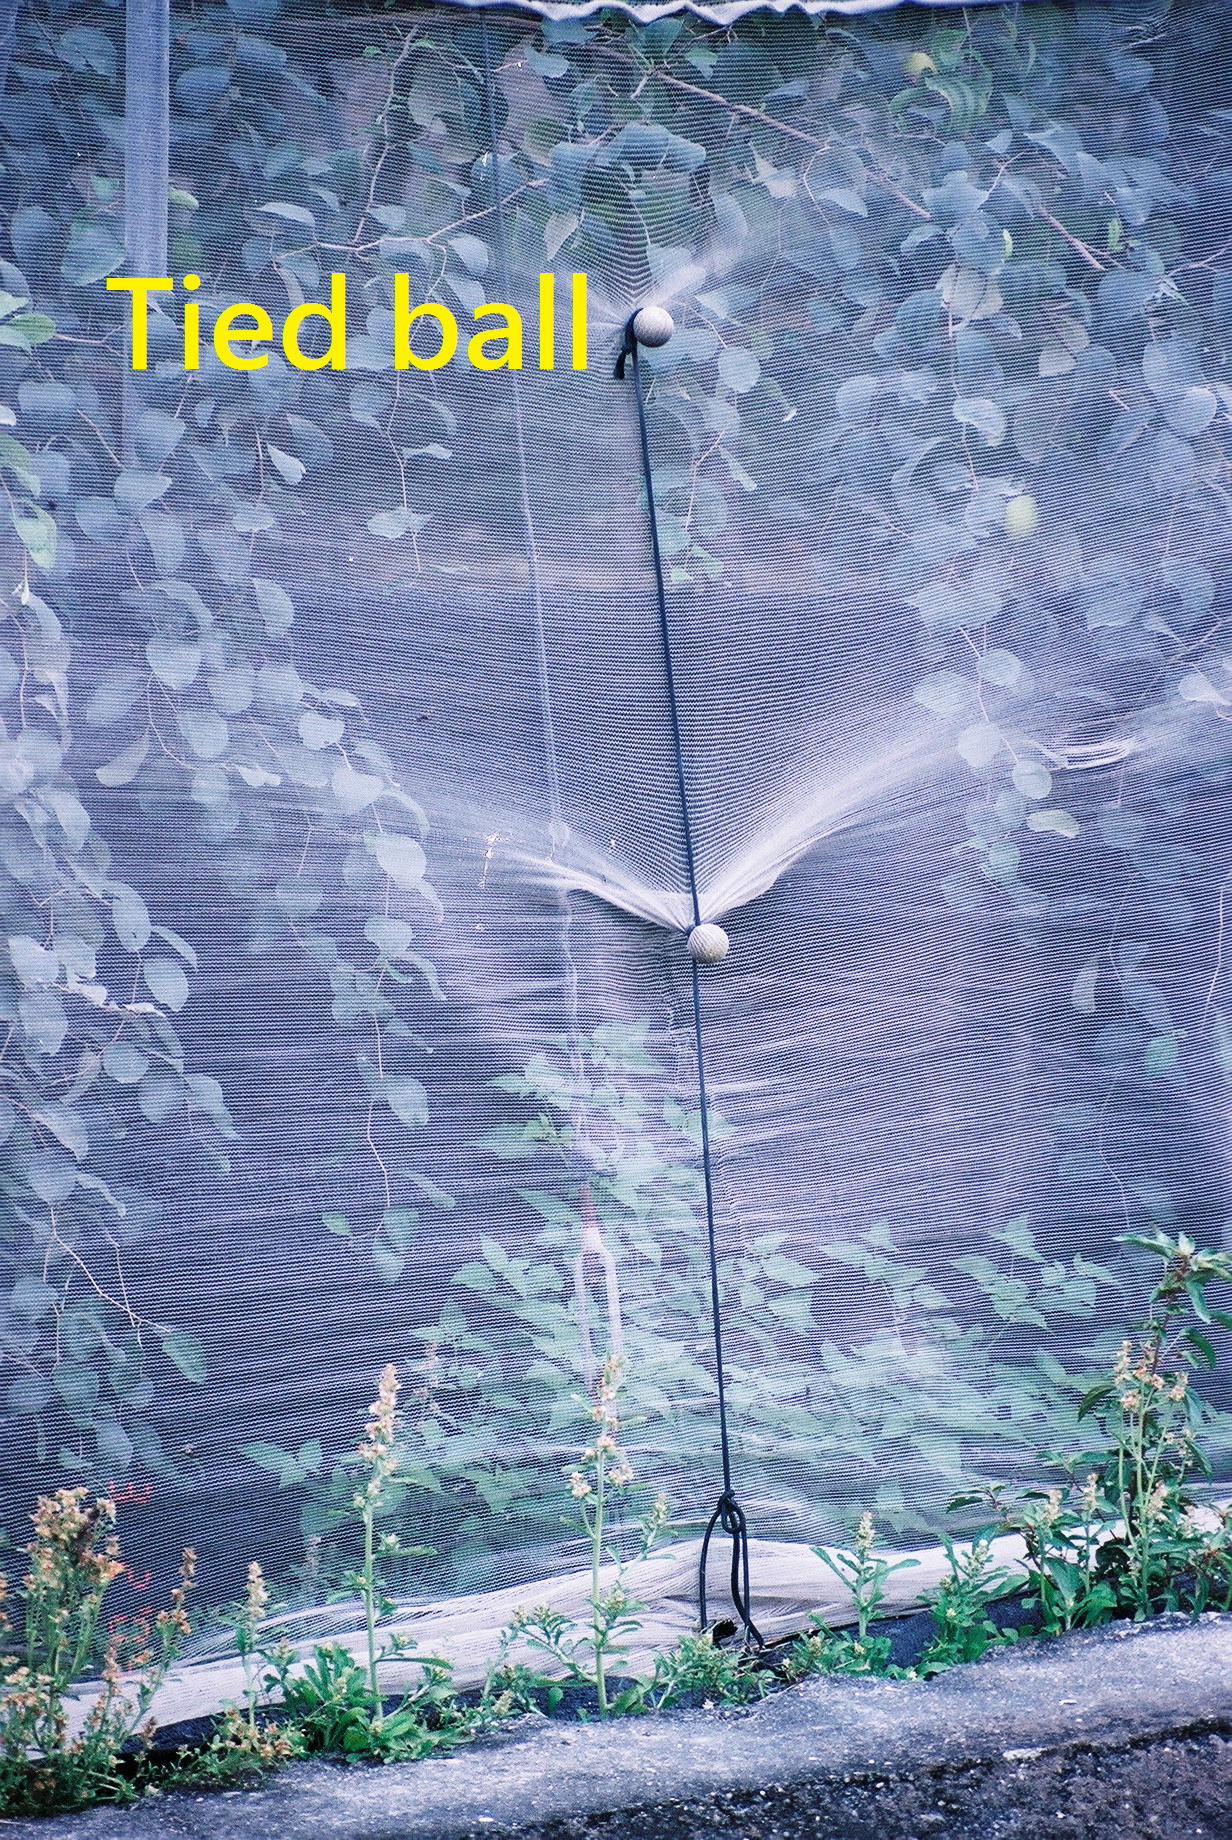 tied ball.png